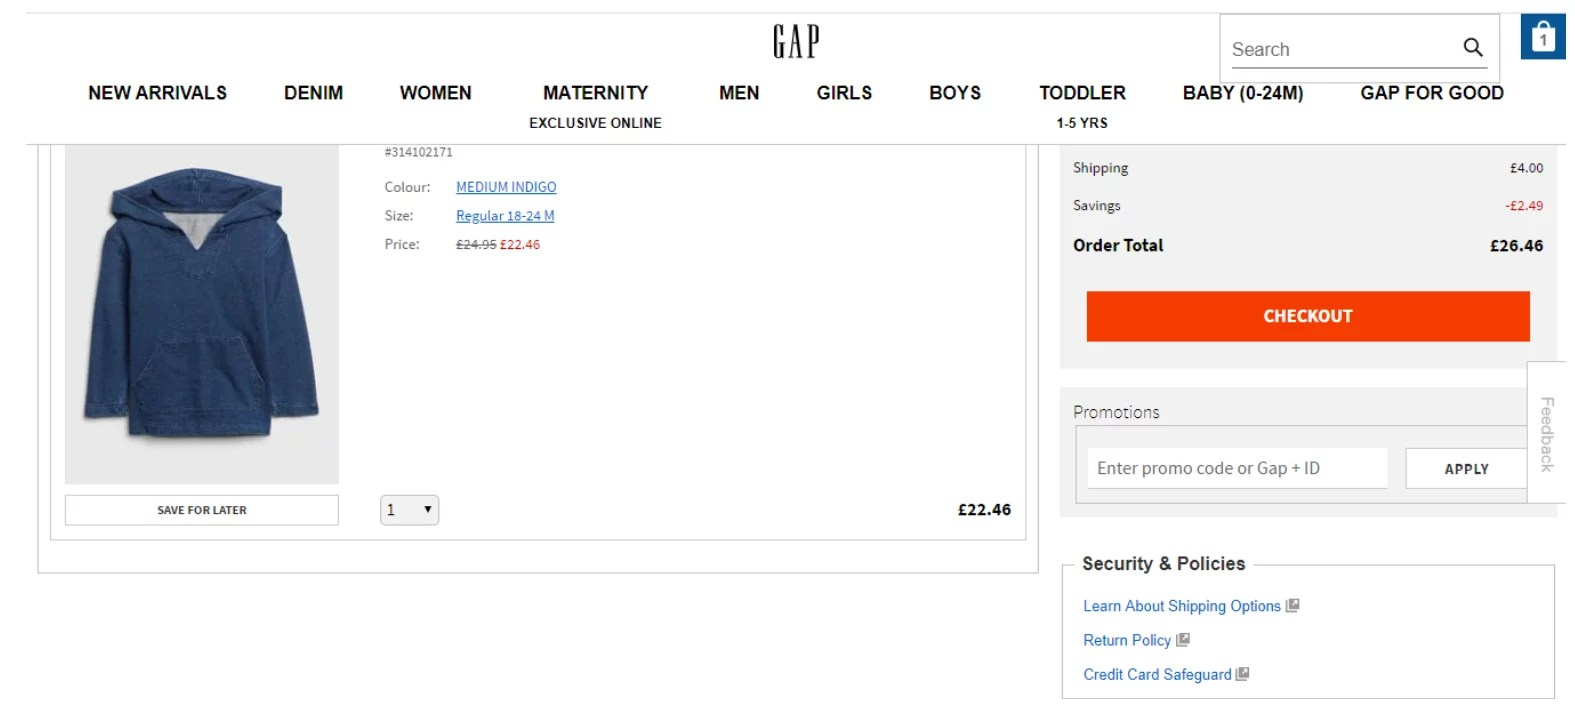 gap discount codes 5 off in february